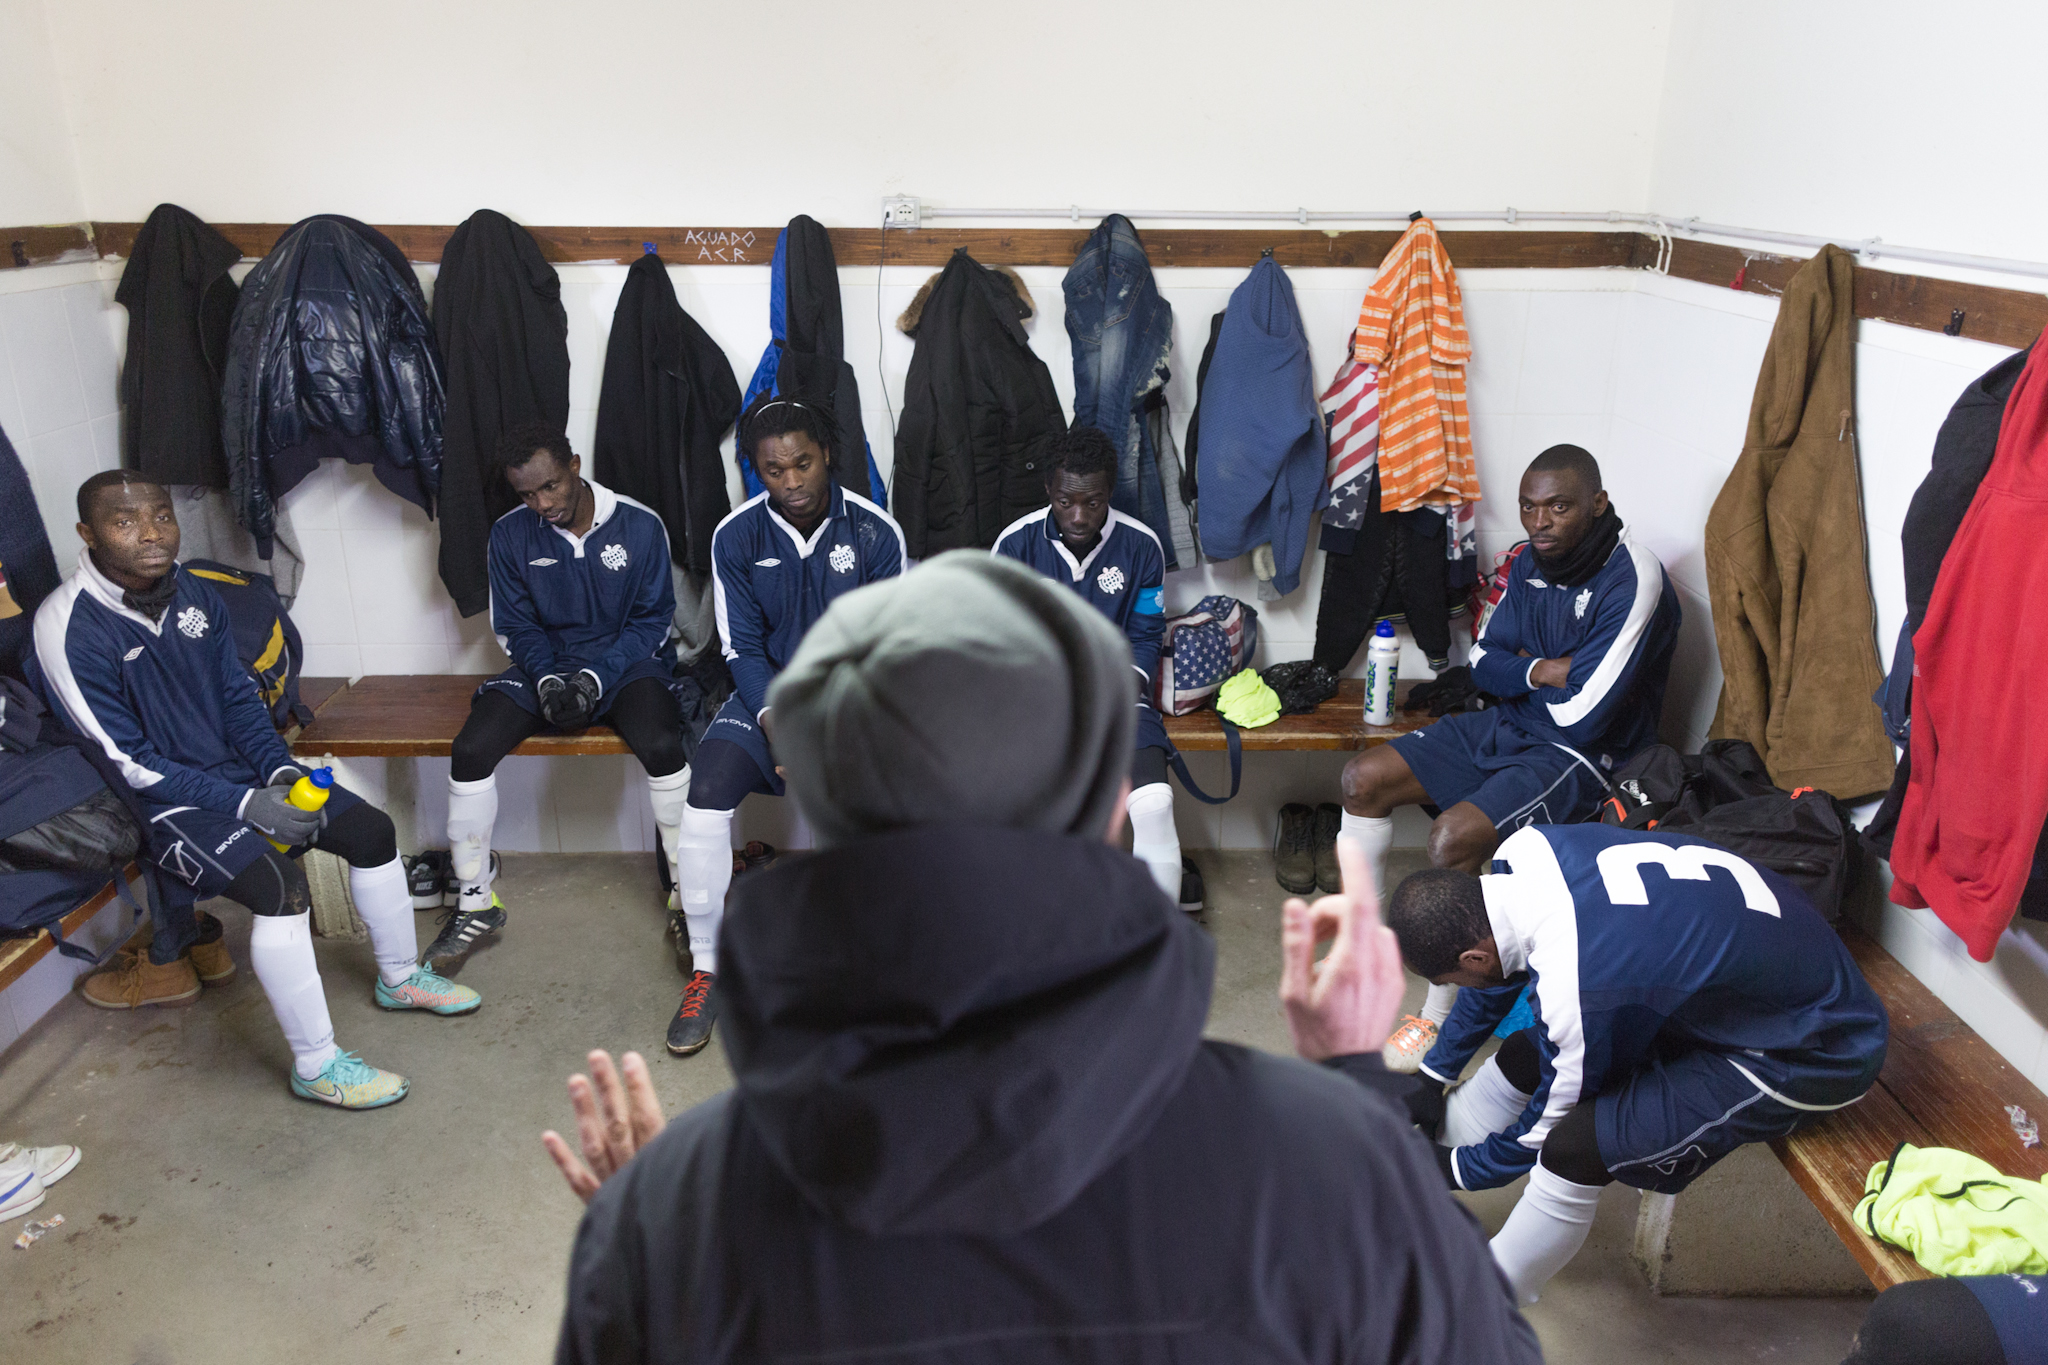 Coach Salvatore Lisciandrello (aka Toti) speaks to the team moments before a game.